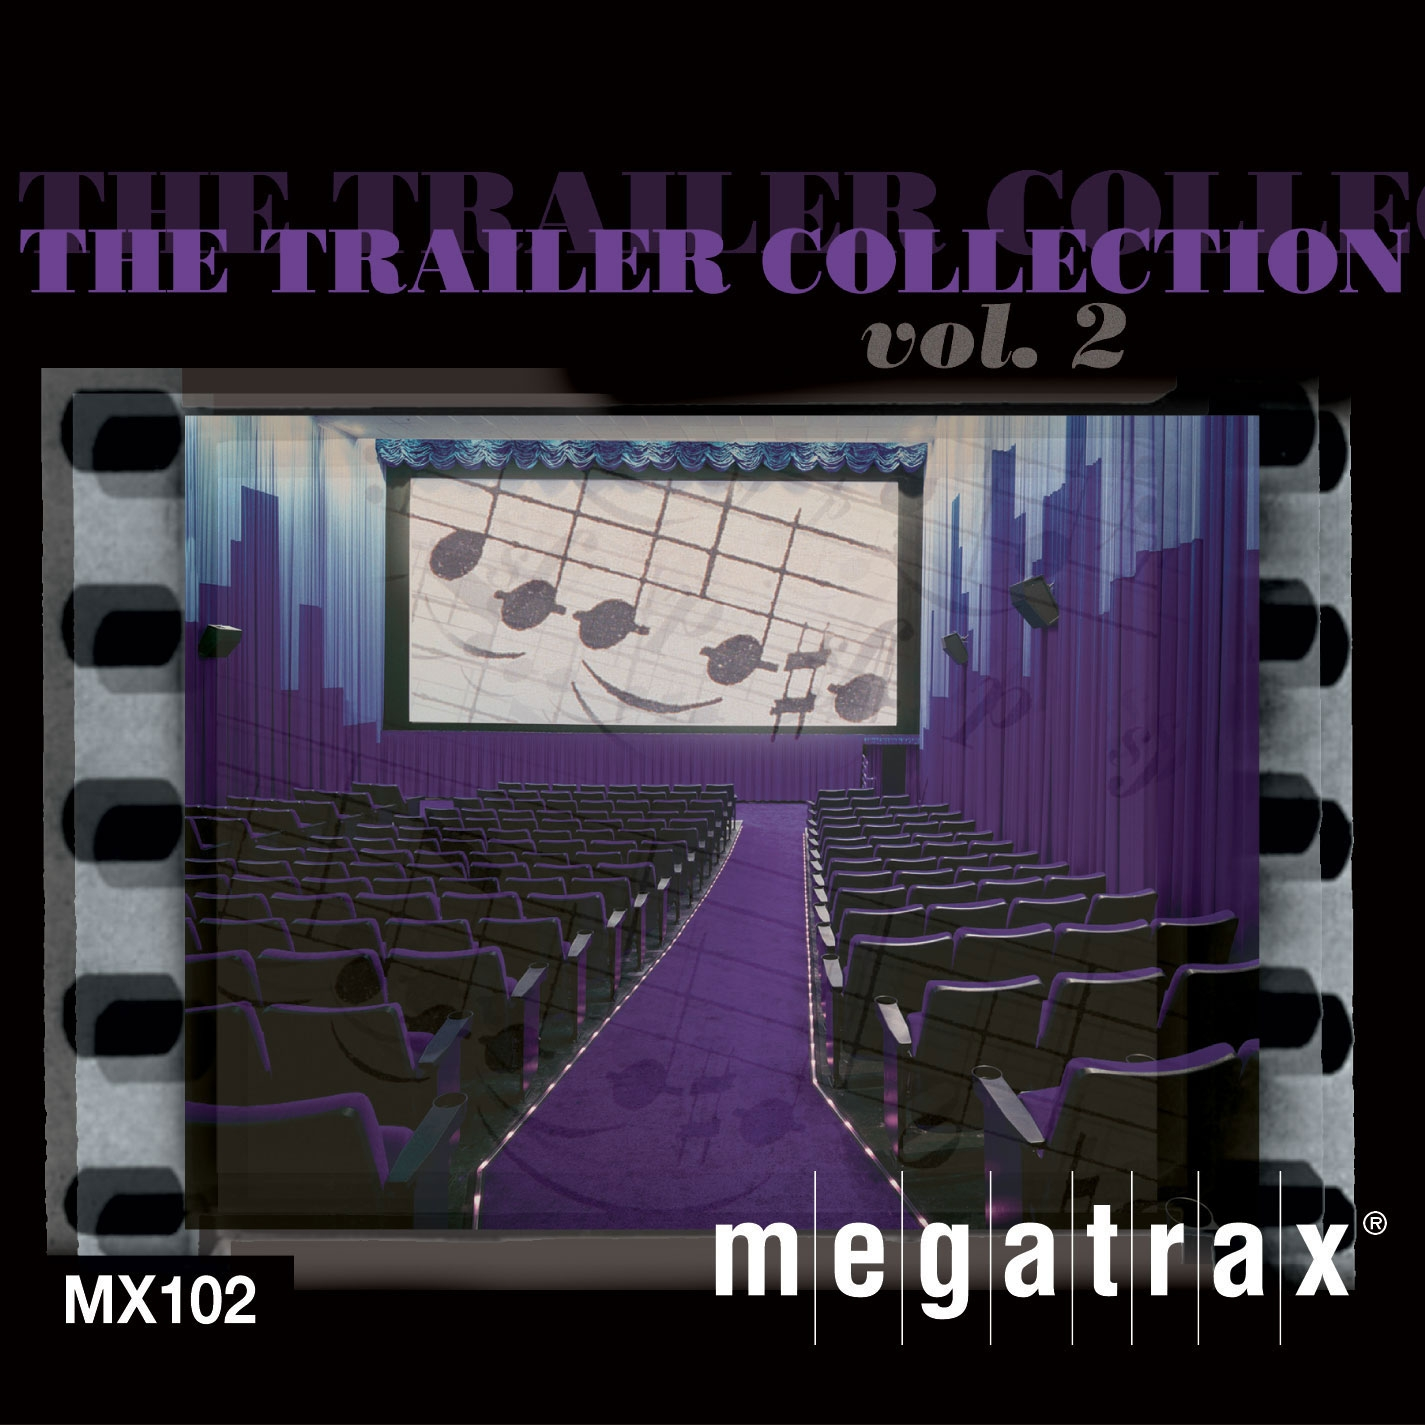 The Trailer Collection Vol. 2